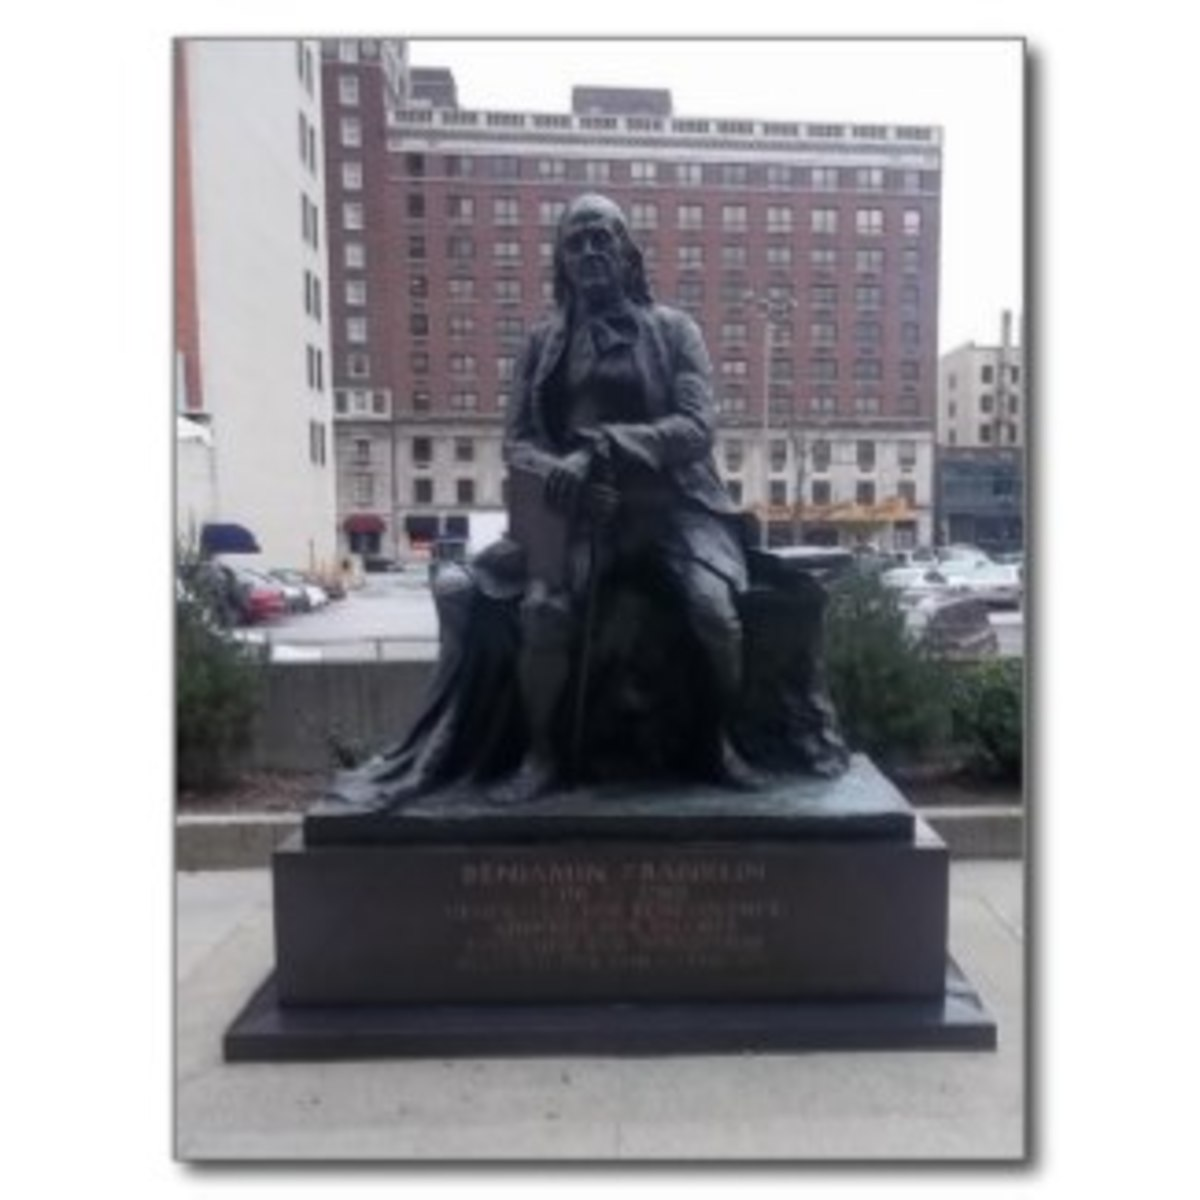 Benjamin Franklin started the first library in Philadelphia so he's a natural for a library statue.